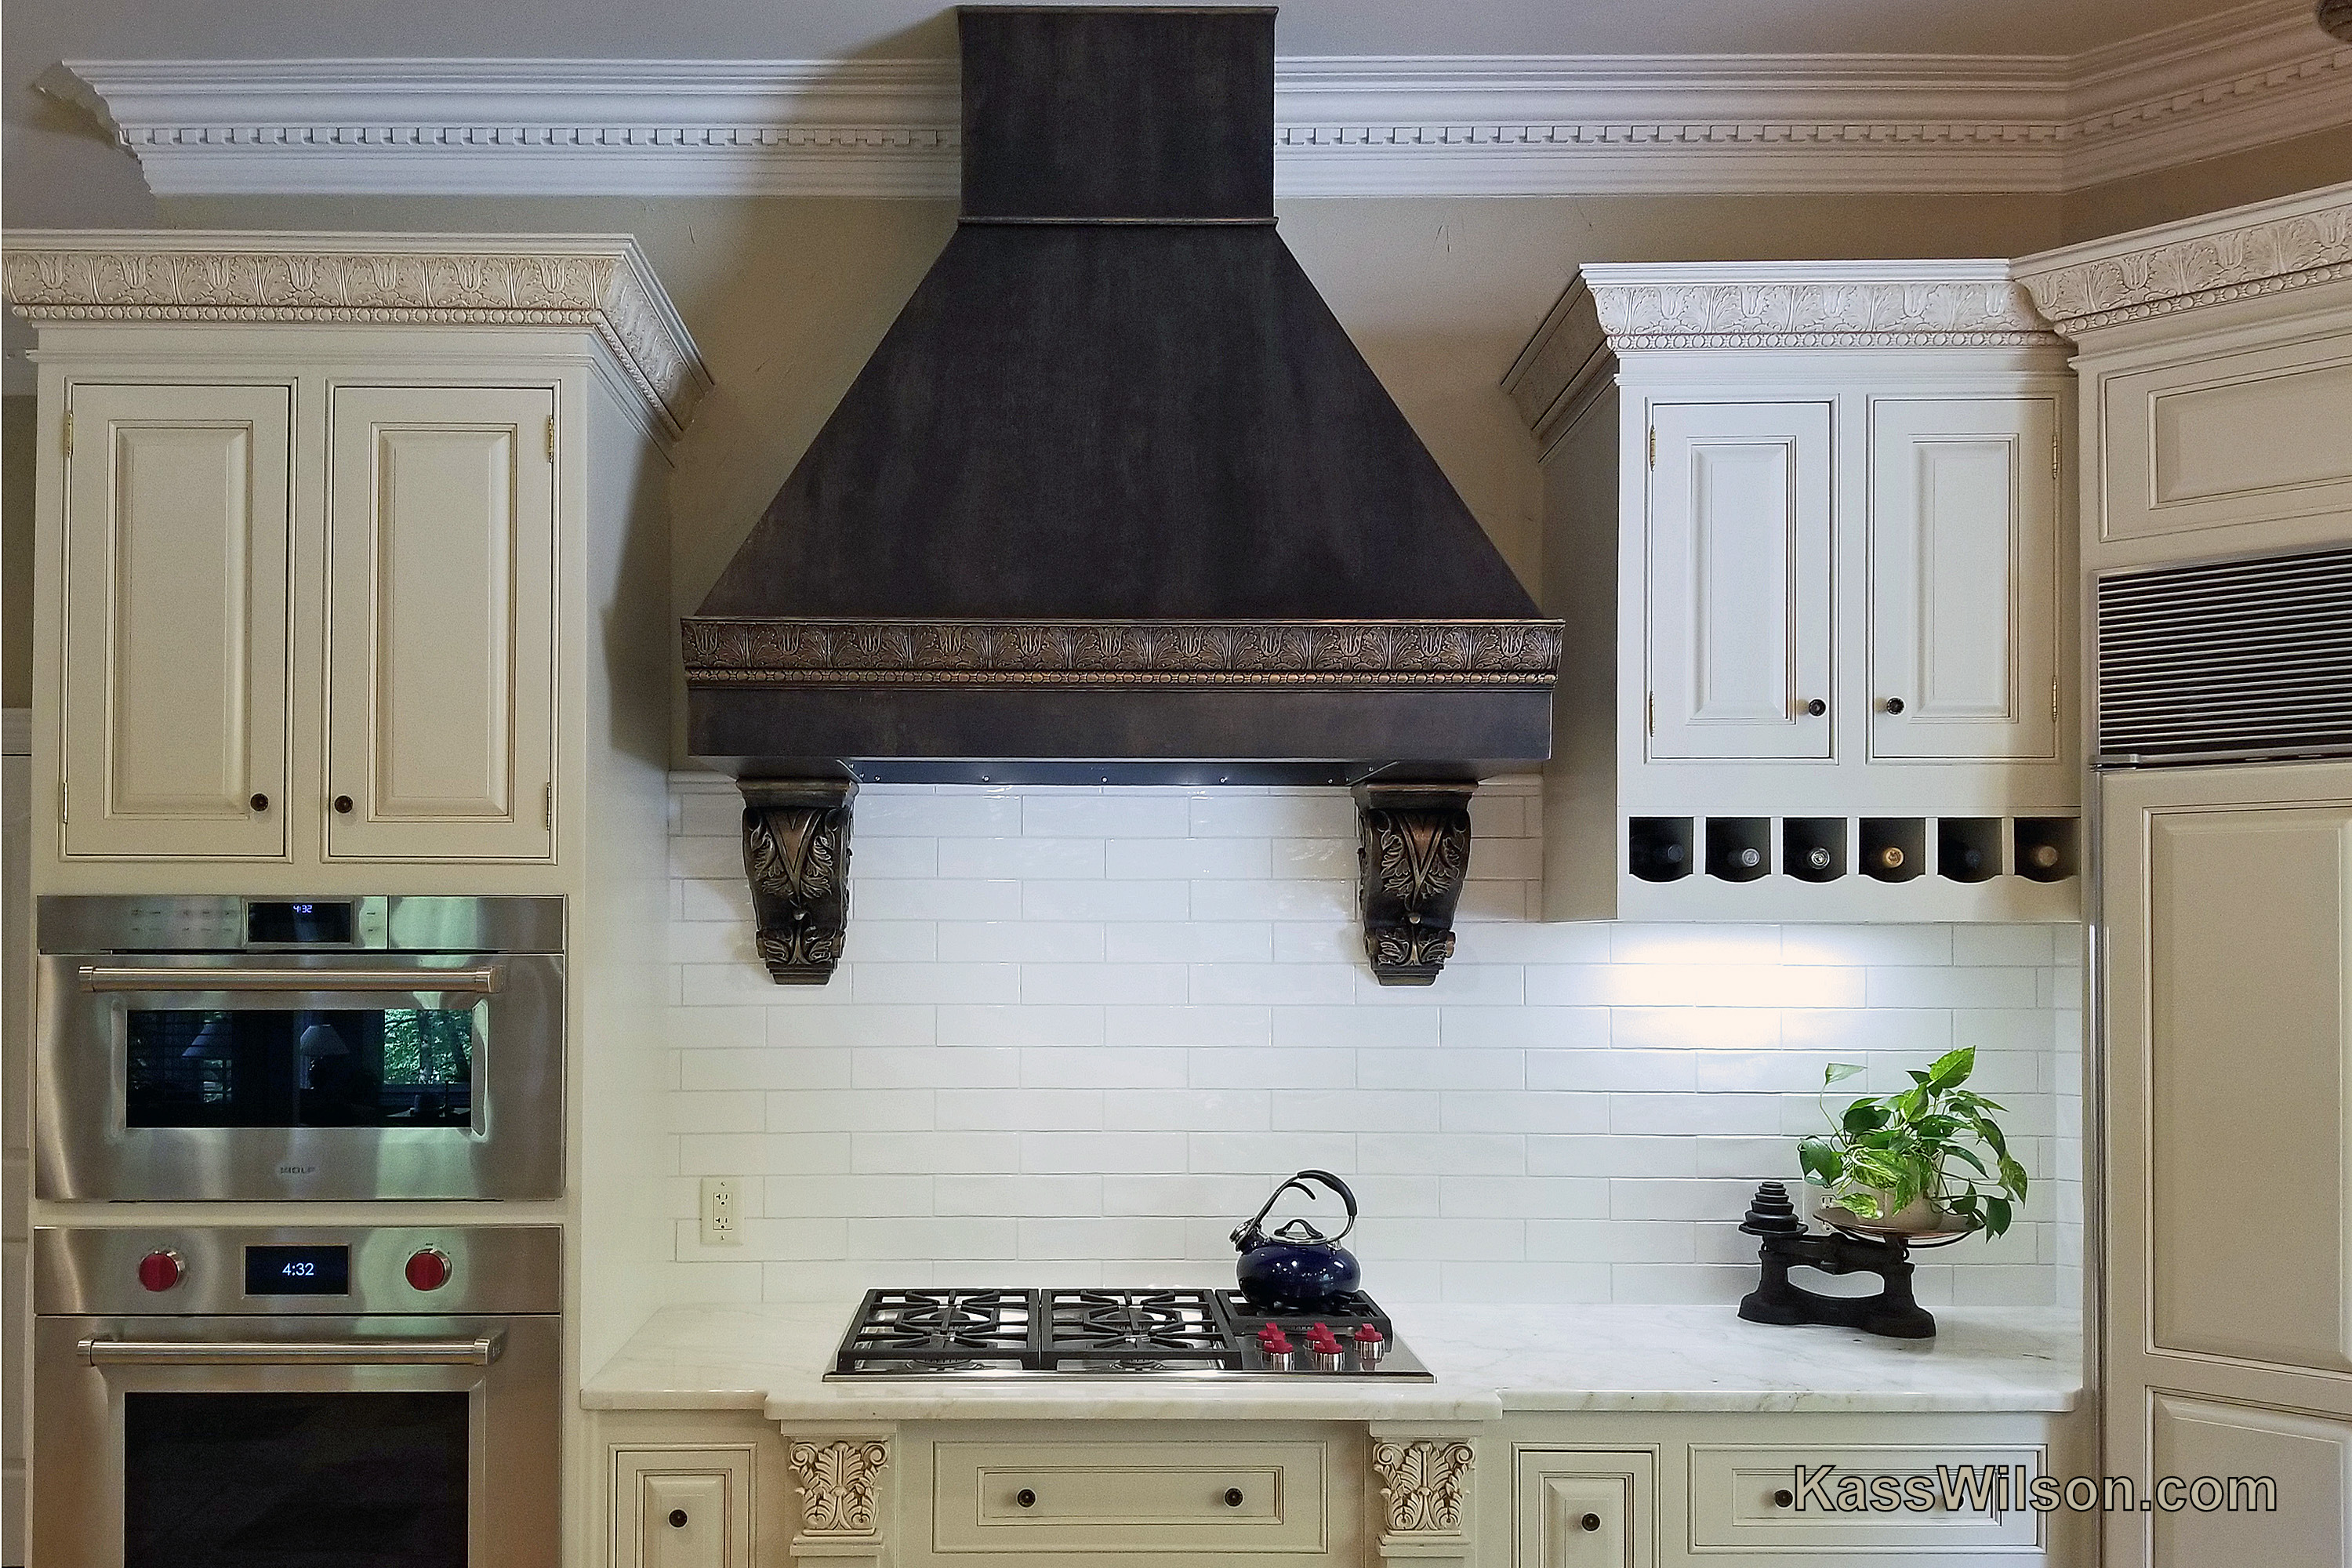 3-cabinet-and-vent-hood-refinishing-20190918_163331pswm